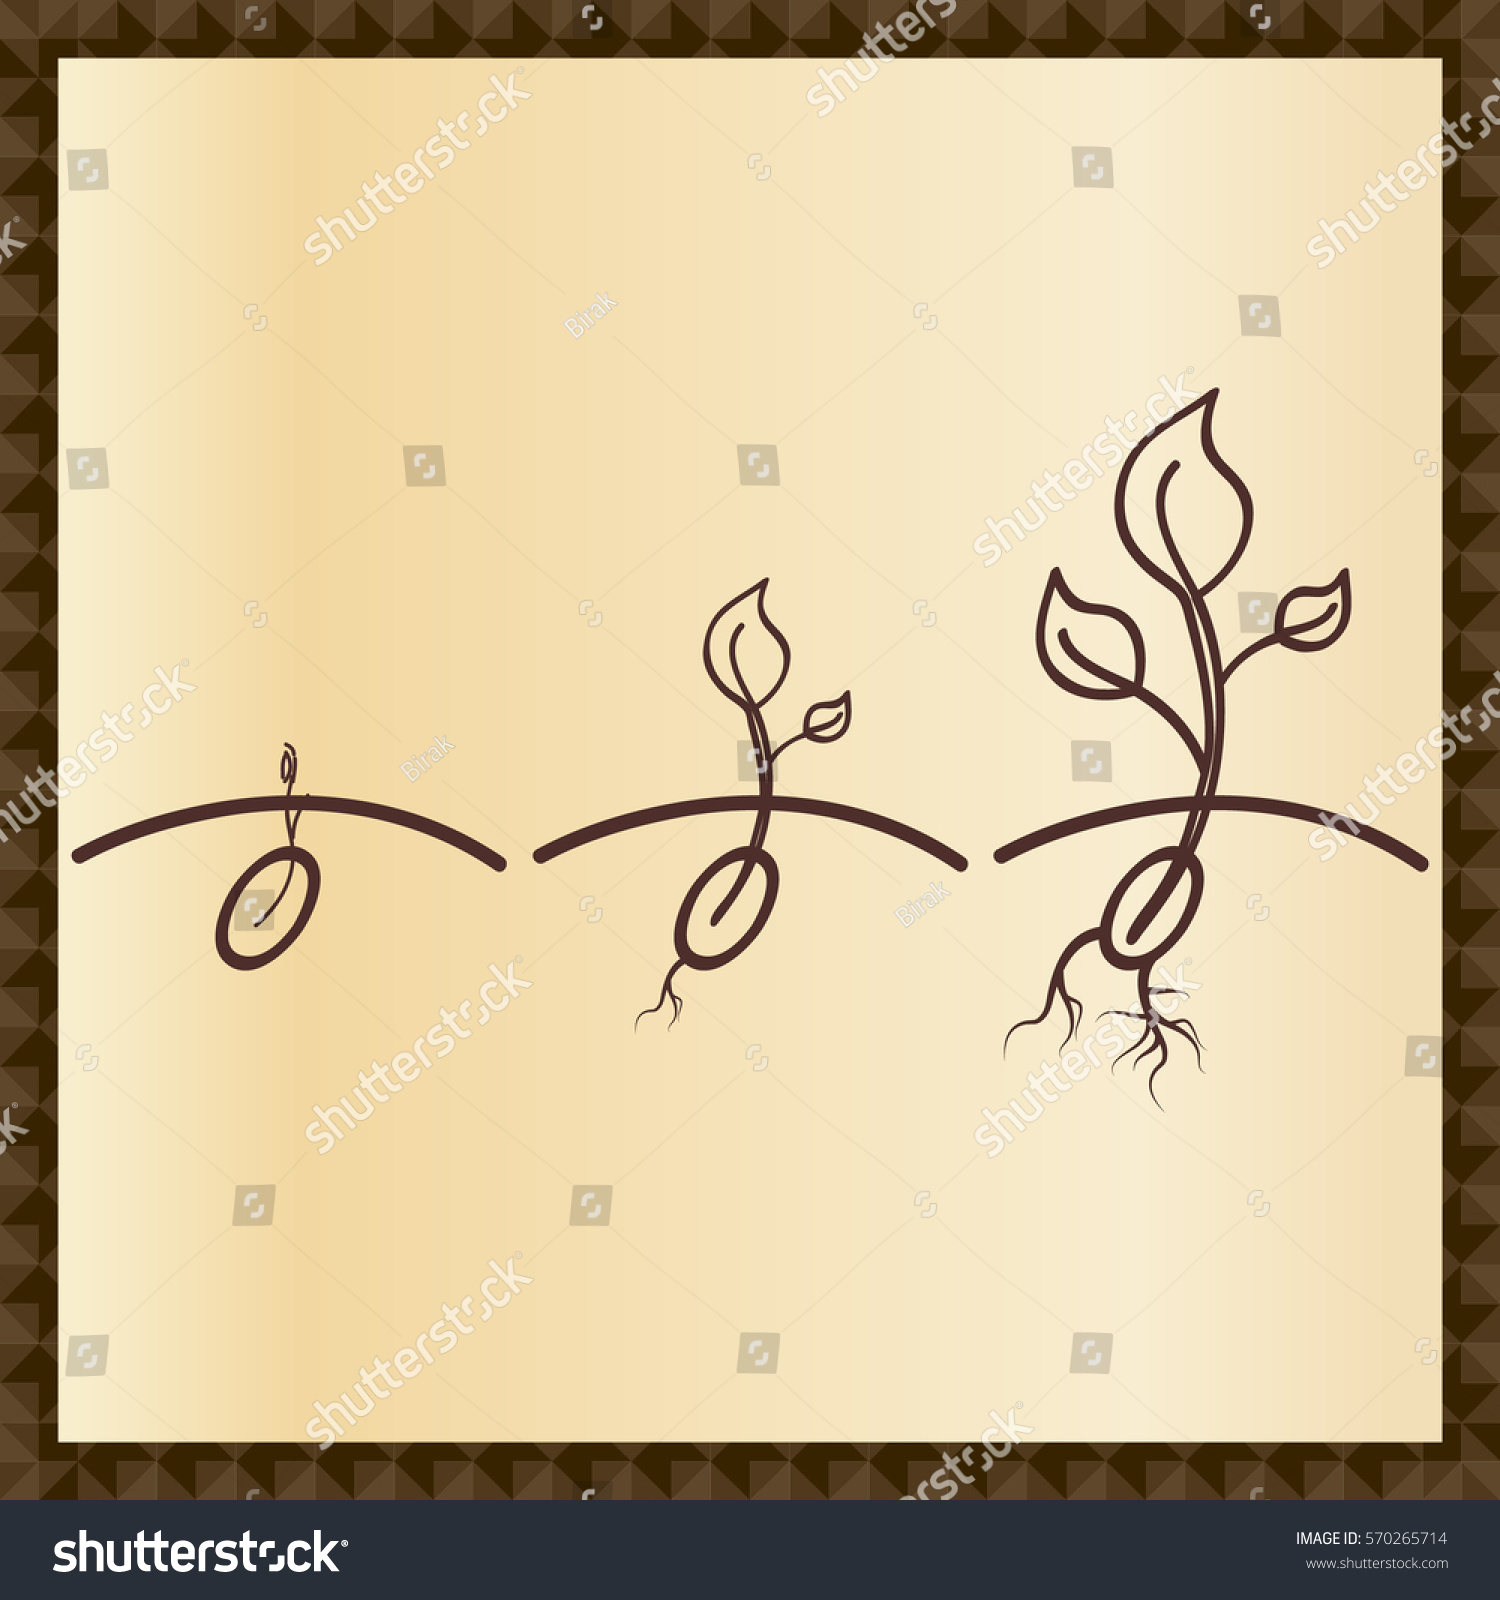 Plant Growth Stages Seeds Sprouts Seedling Stock Vector Royalty Diagram Showing The Of Seed Germination And Stem Root Contour Line